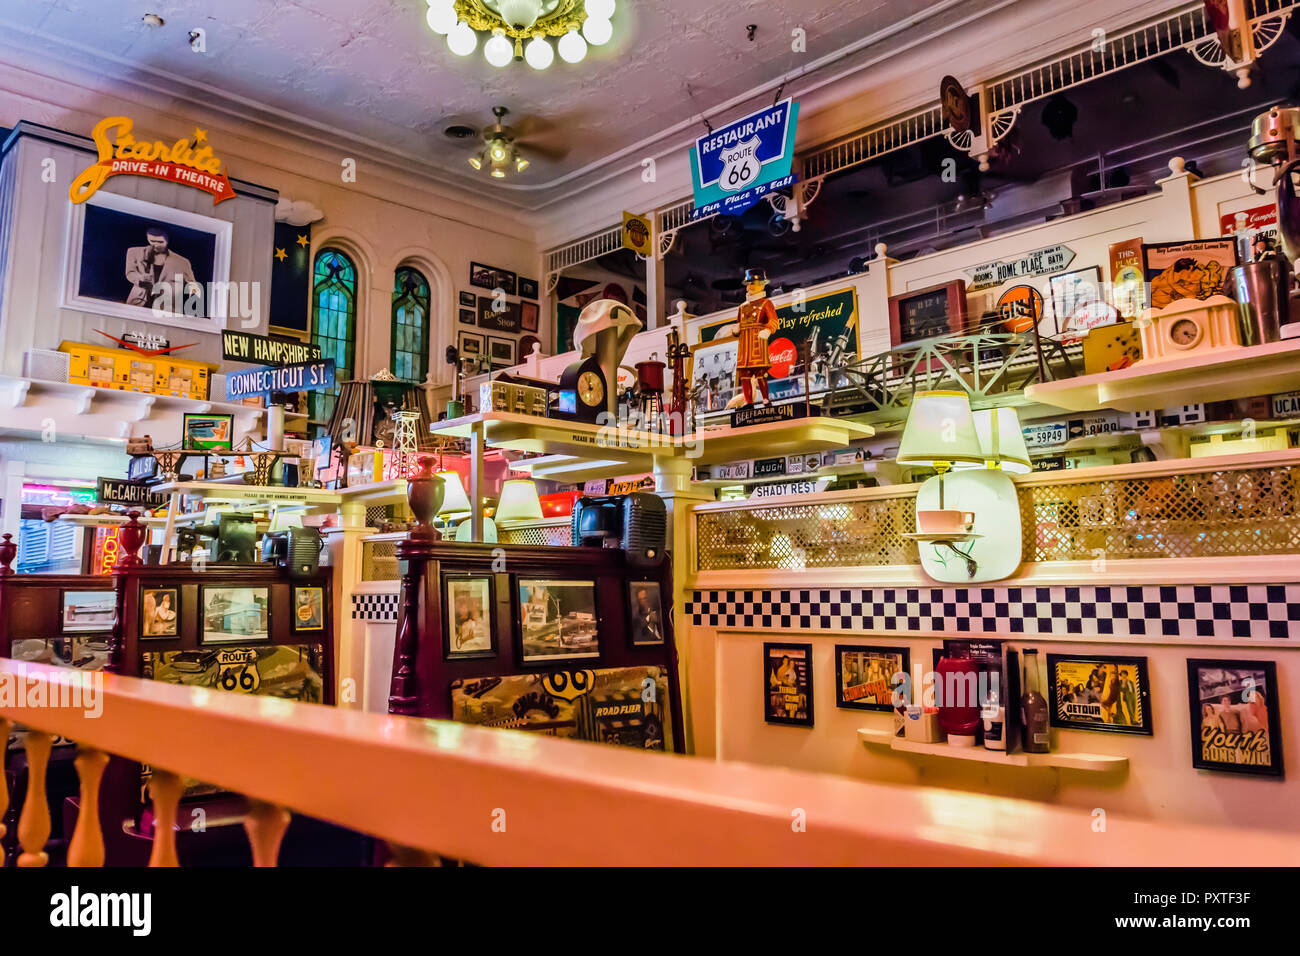 Route 66 Restaurant Bar Harbor Maine Usa Stock Photo